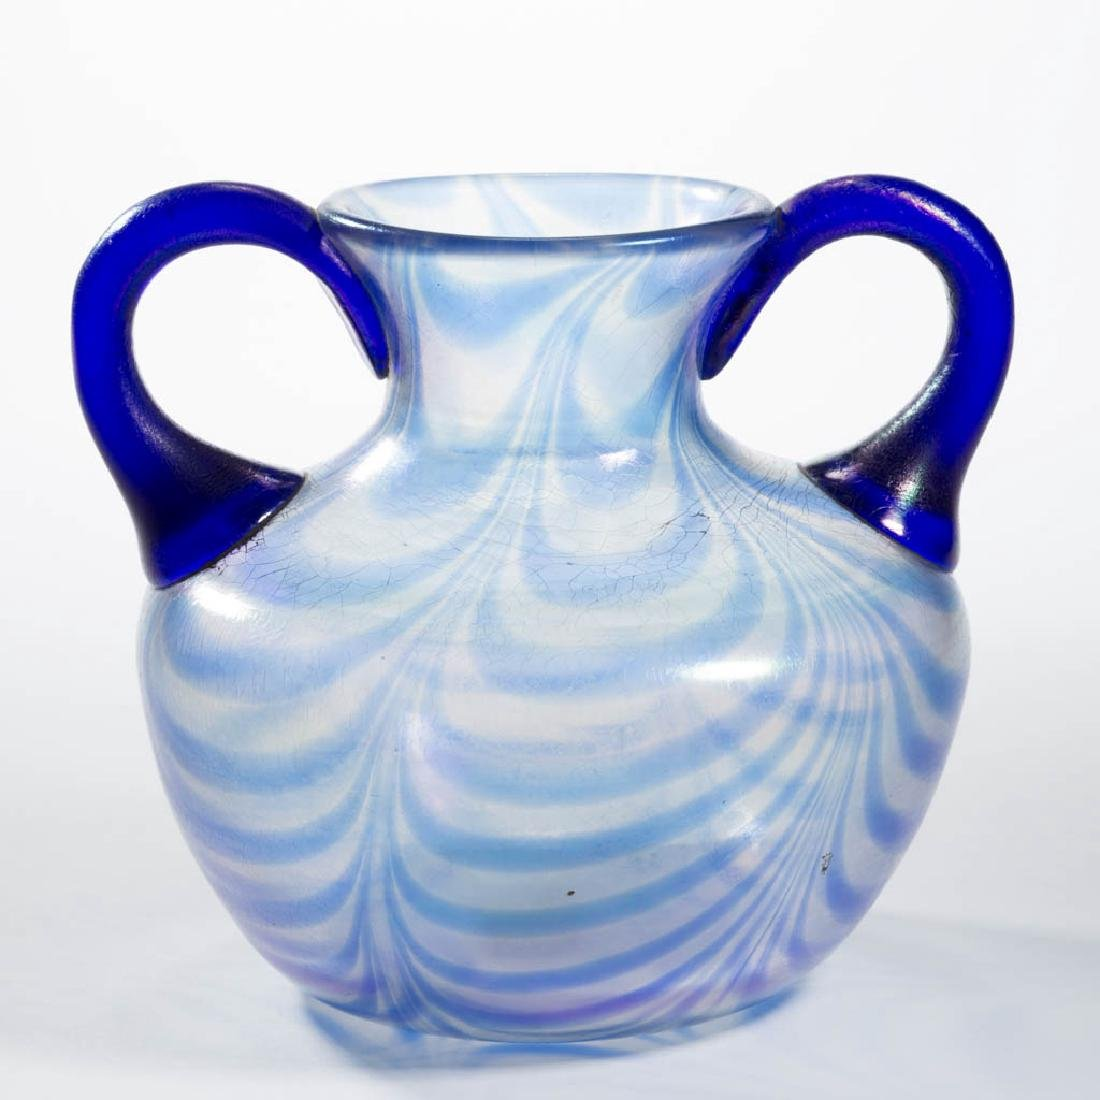 IMPERIAL ATTRIBUTED FREE-HAND LOOPS ART GLASS VASE